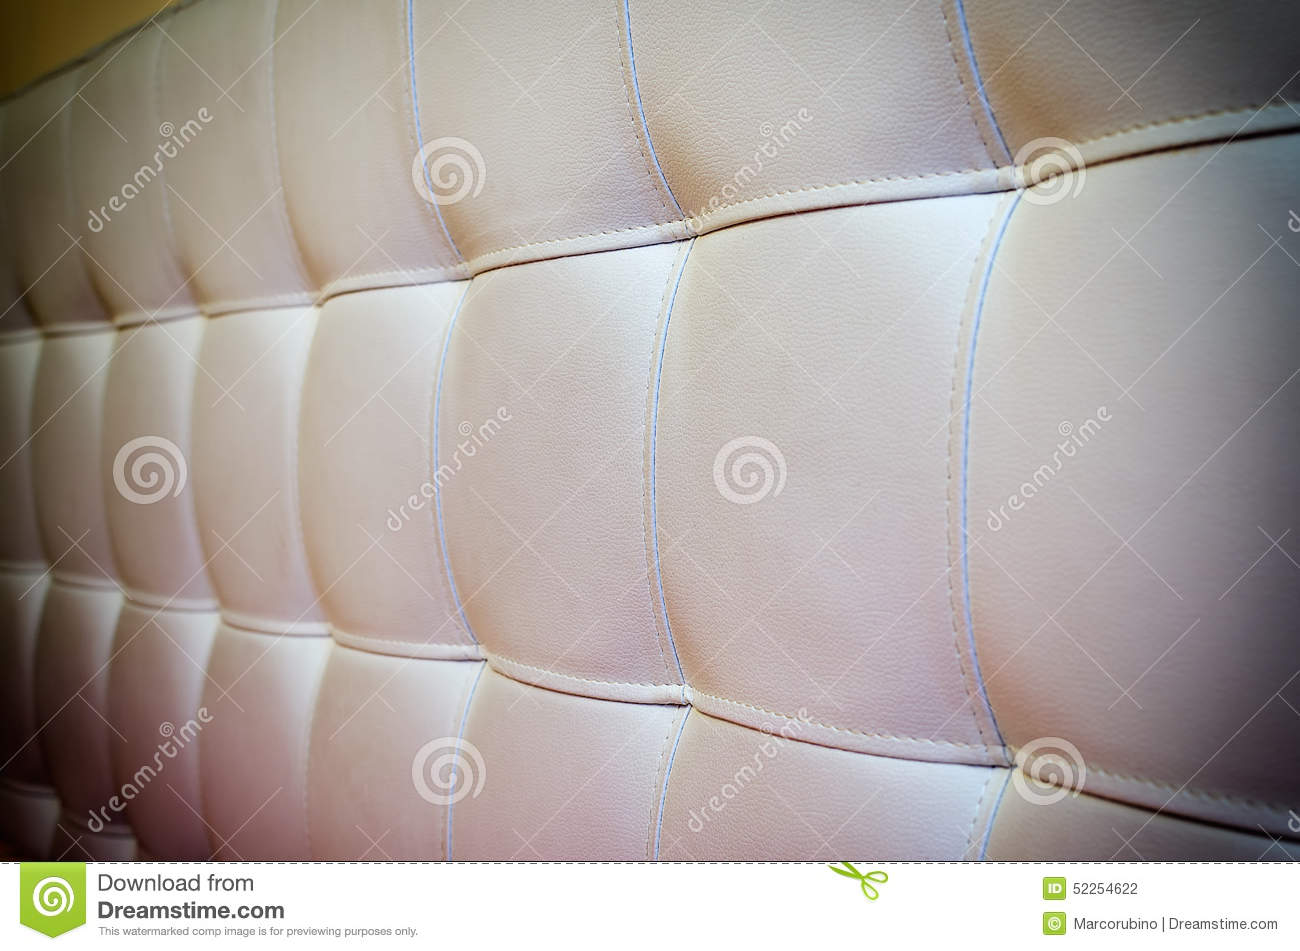 Tufted White Leather Headboard Texture For Background With